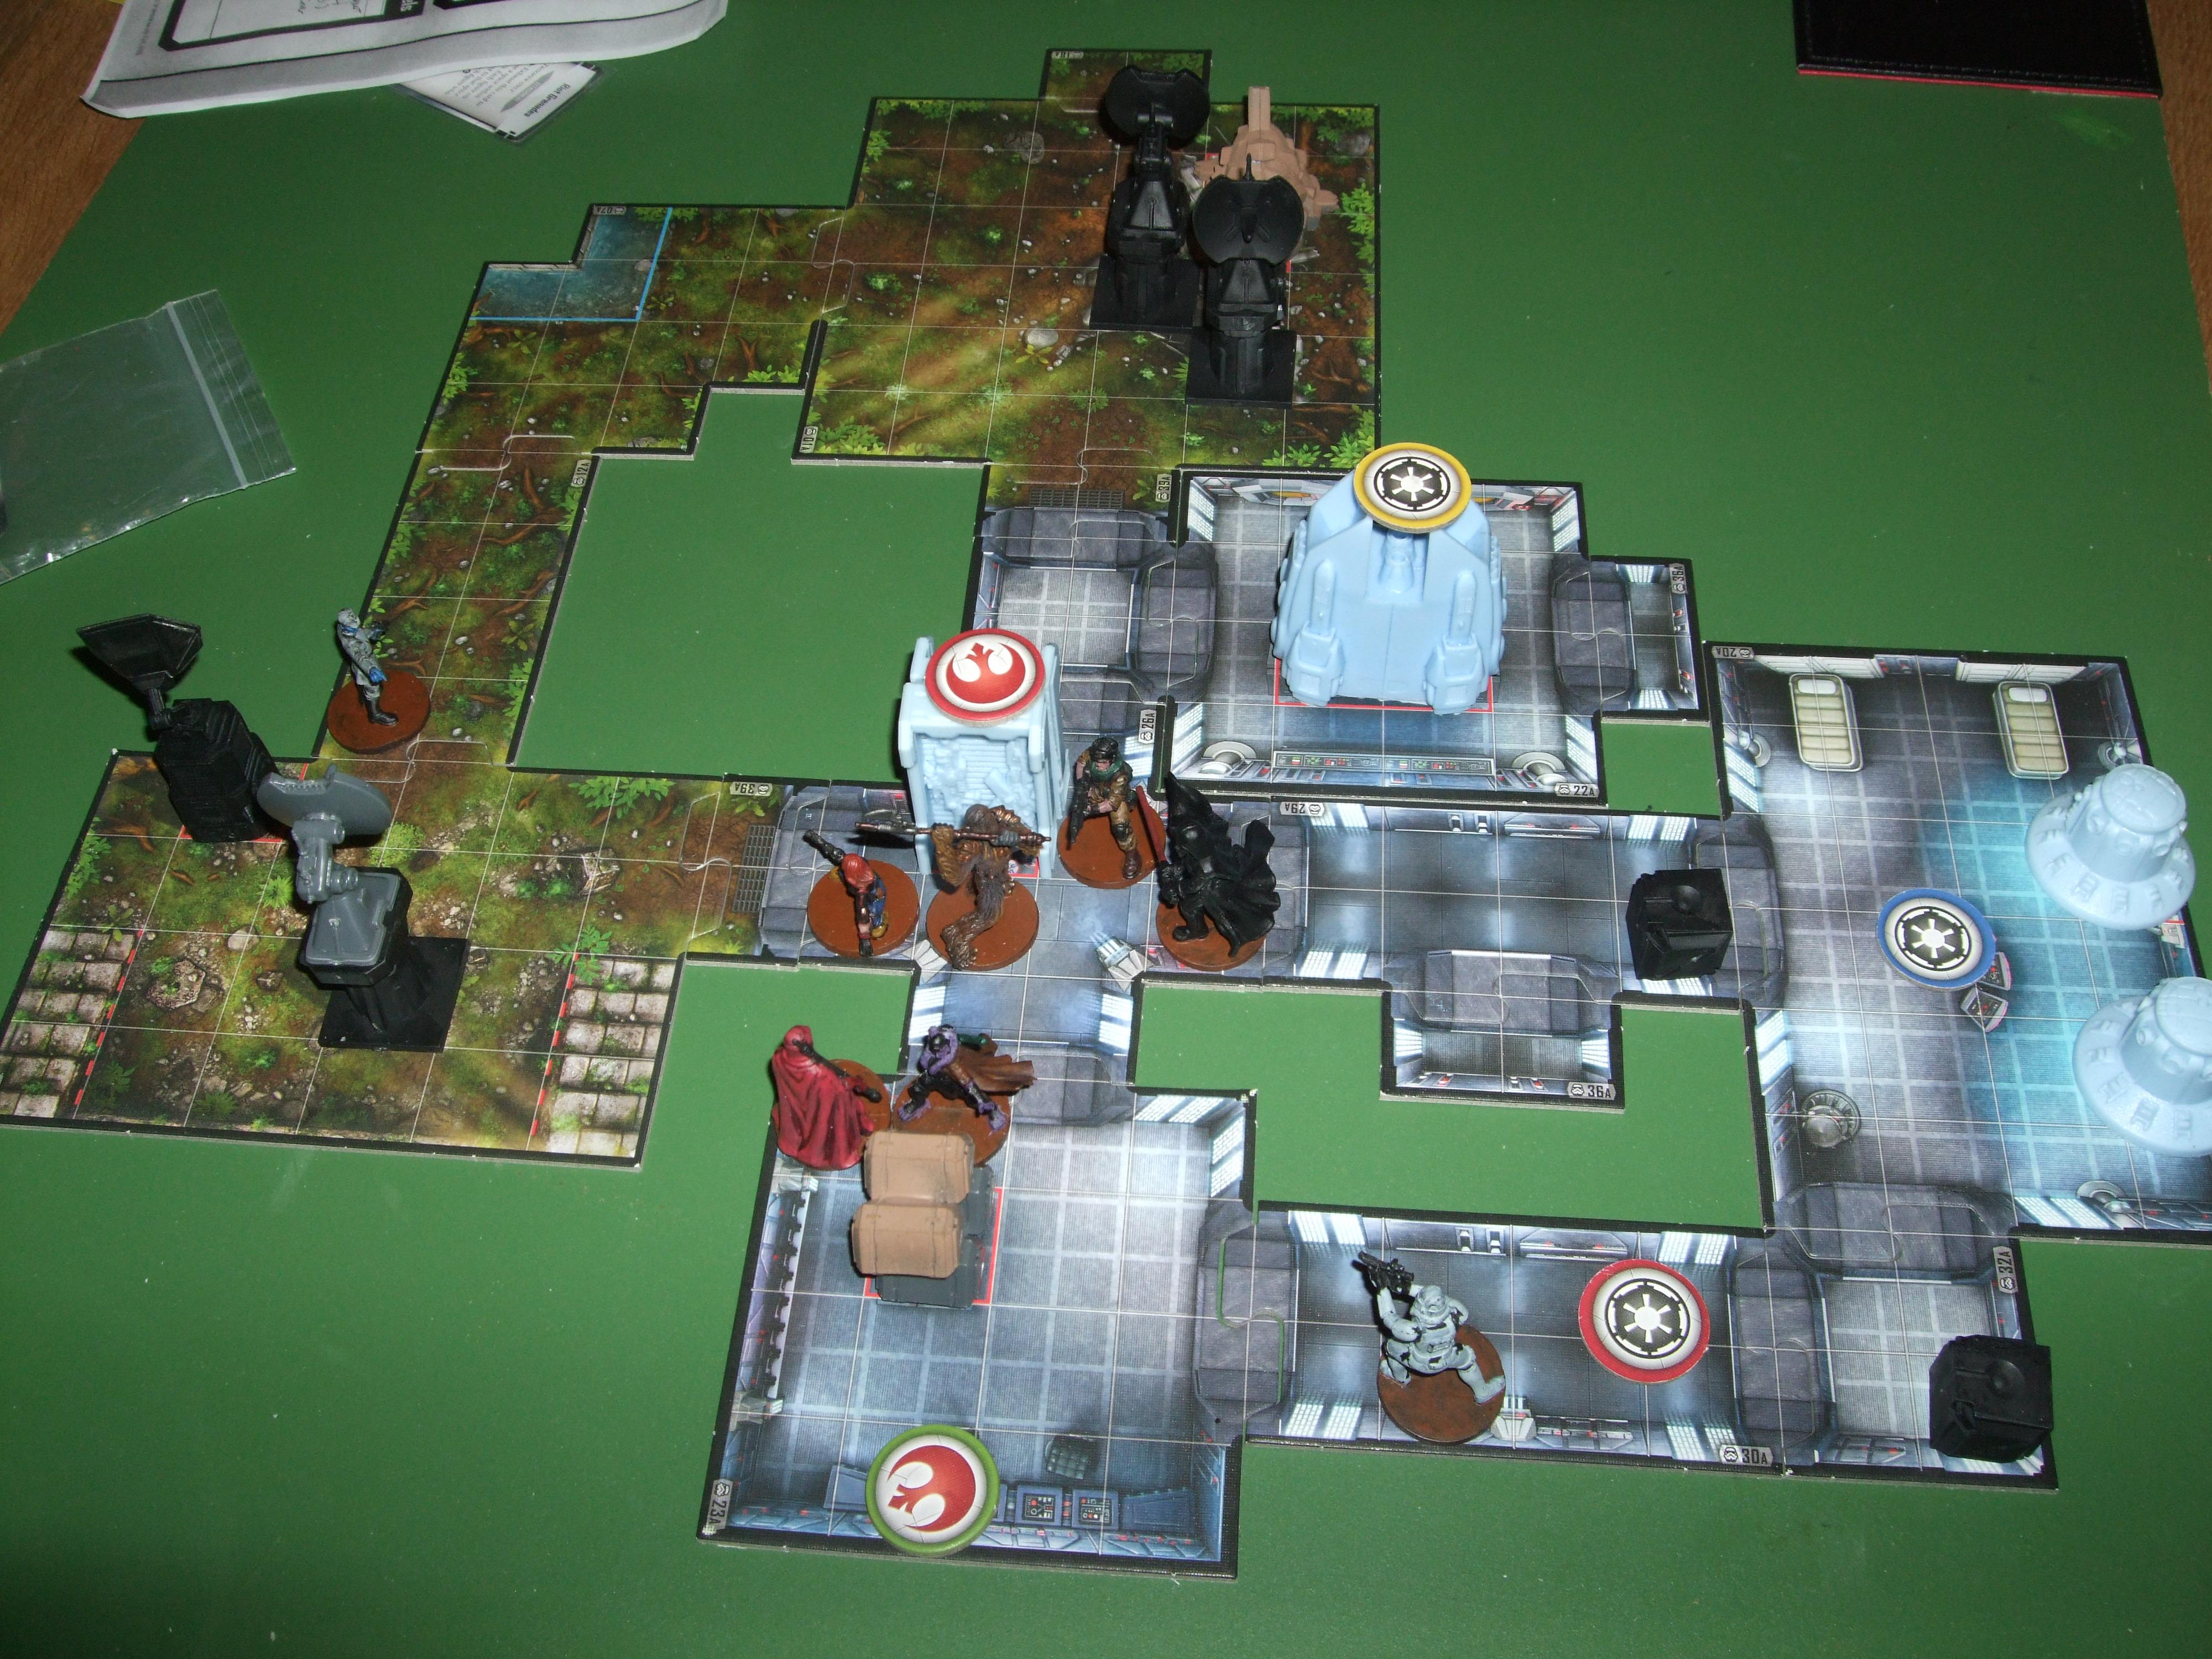 Campaign, Imperial Assault, Jedi, Star Wars, Storm Troopers, Under Siege, Wookiee